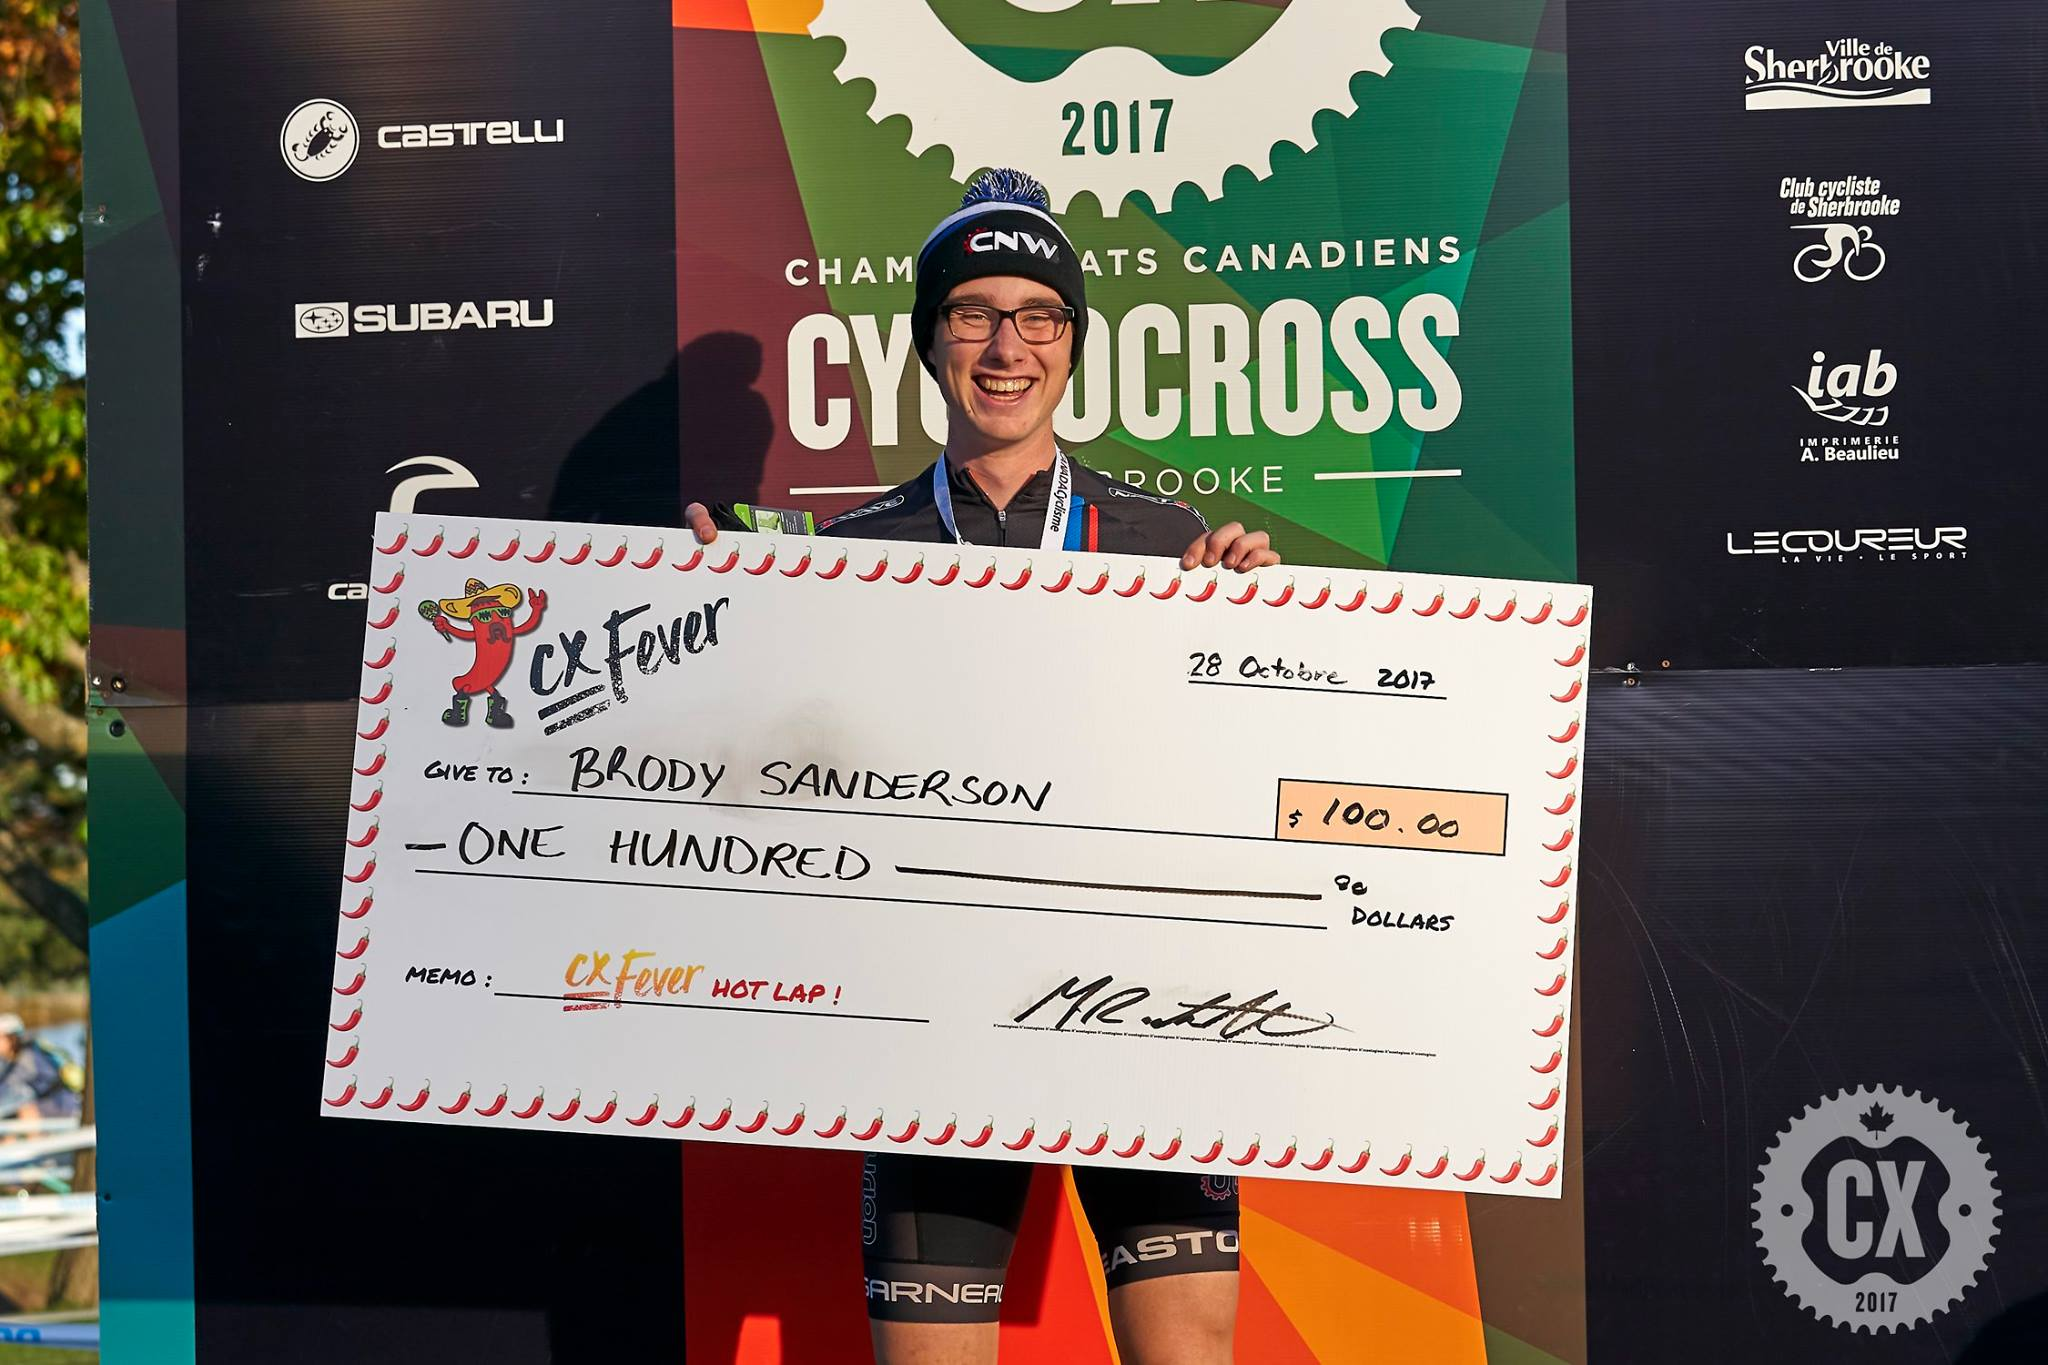 Brody was the spiciest U23 man and won the CX Fever Hot Lap. It was really fun and rewarding to be able to give them a little something for their efforts. Special mention to Laurie Coulombe for the very cool looking Cheque!